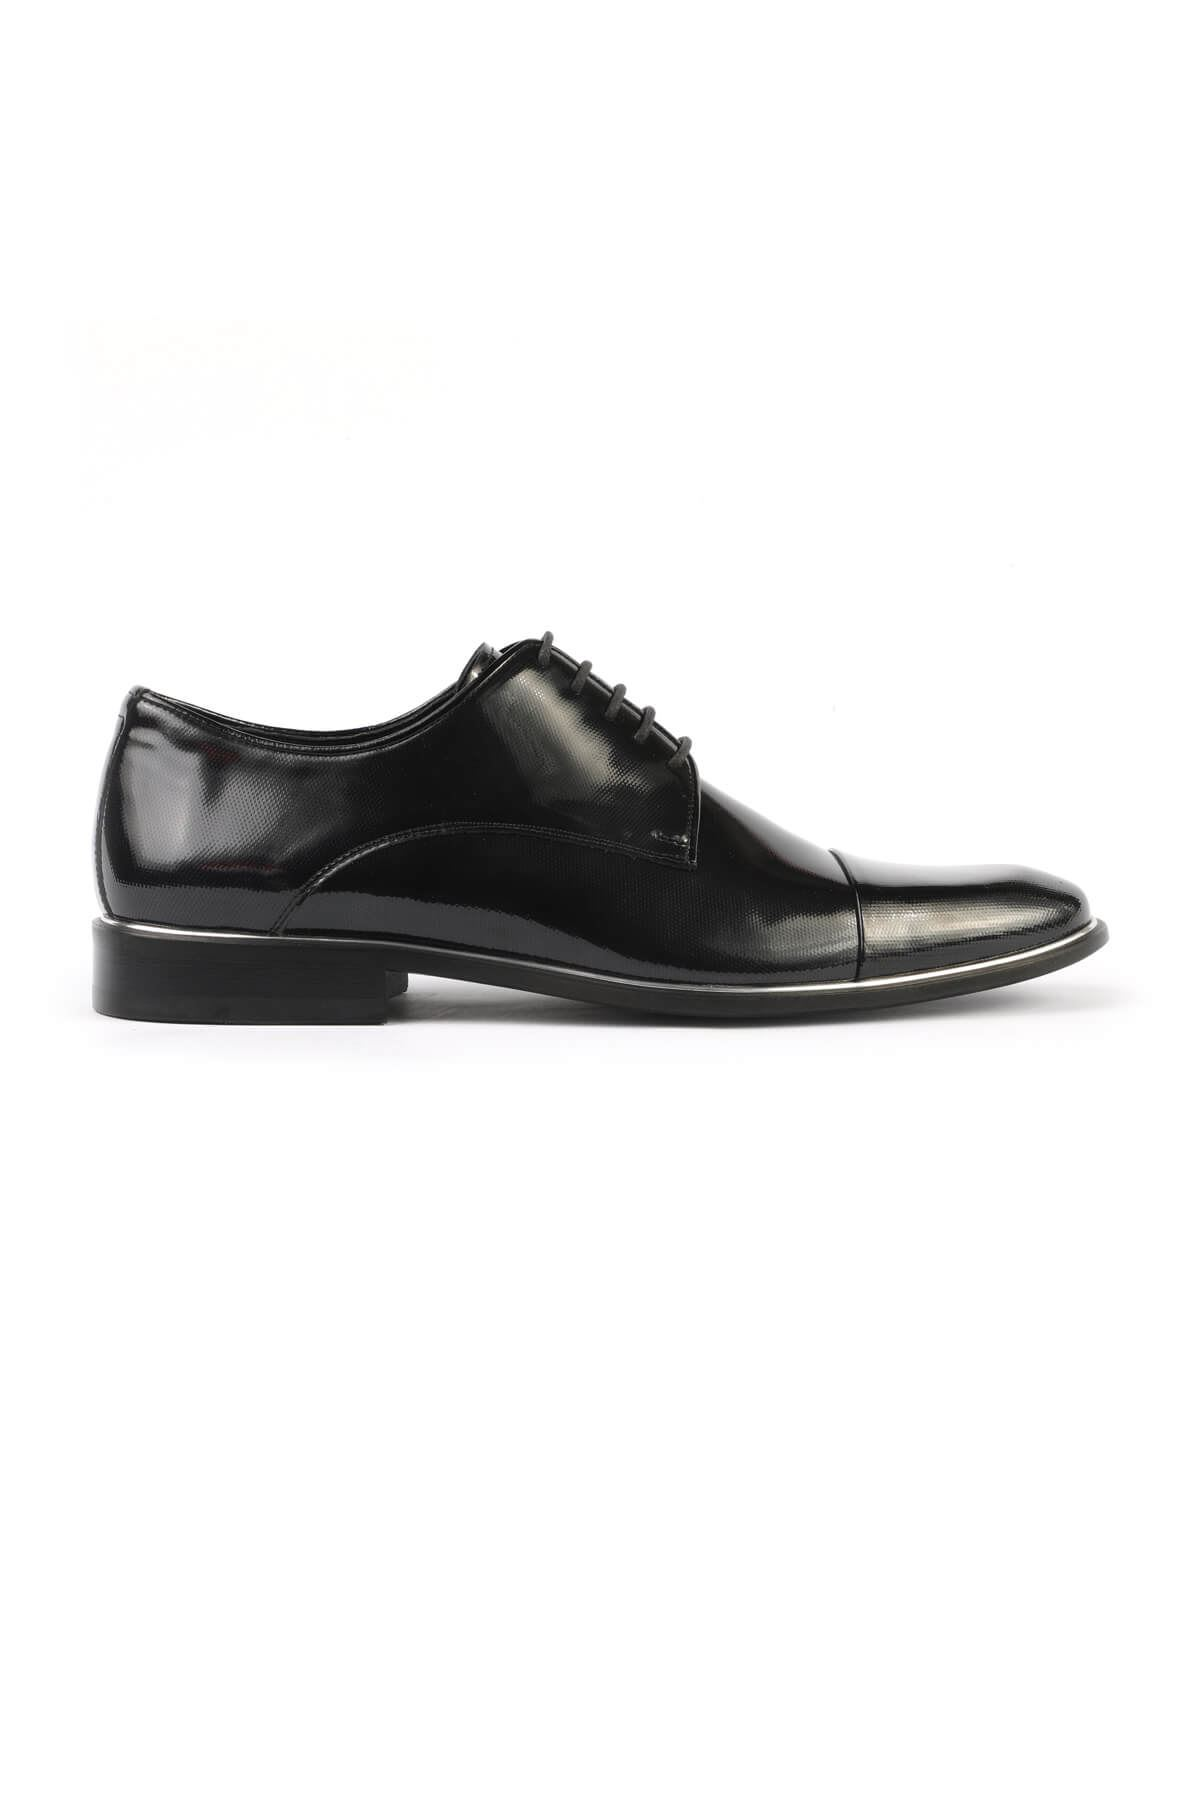 Libero 2474 Black Classic Shoes